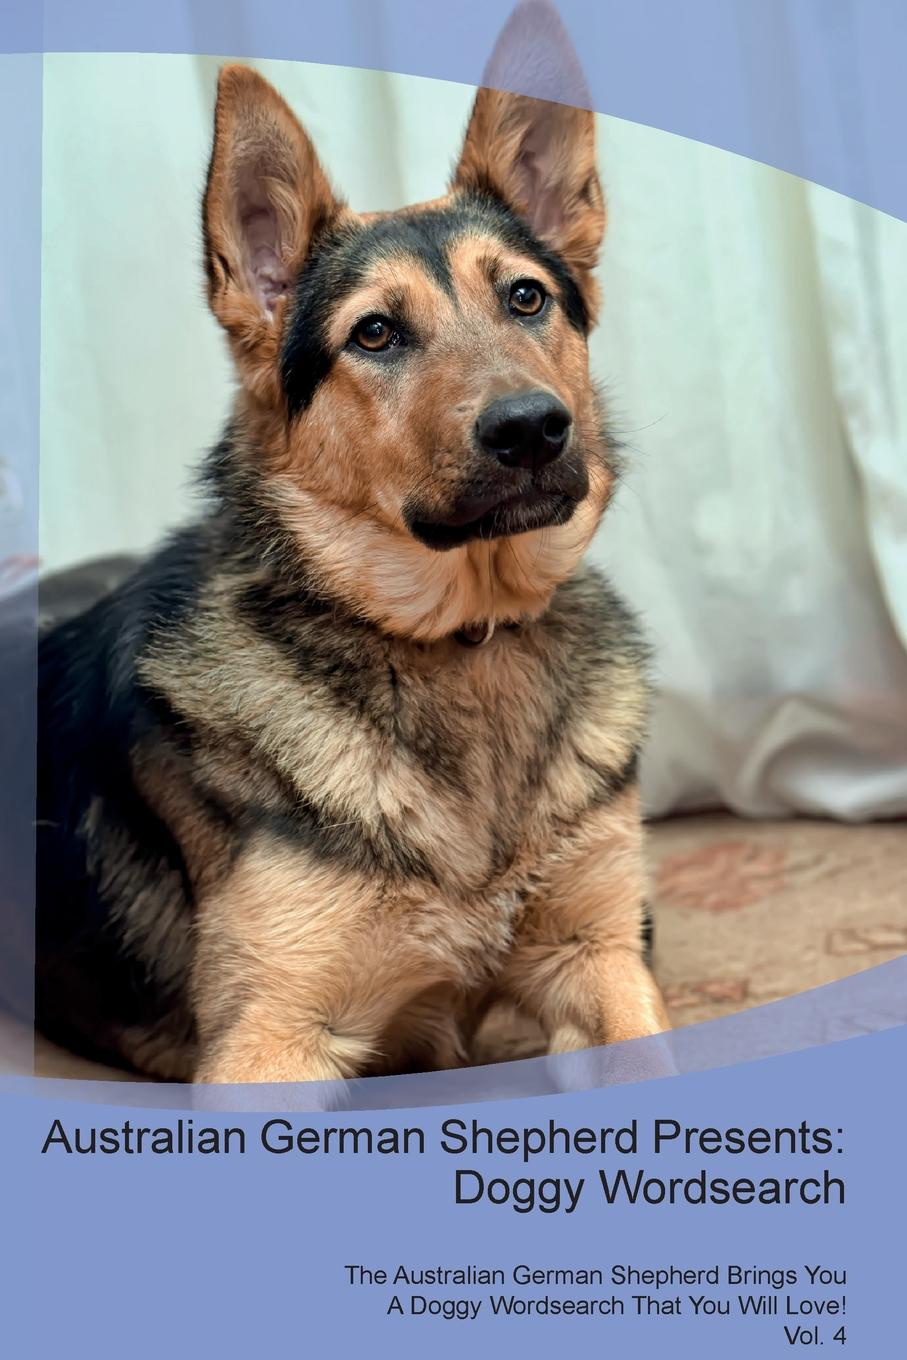 Doggy Puzzles Australian German Shepherd Presents. Wordsearch The Brings You A That Will Love! Vol. 4